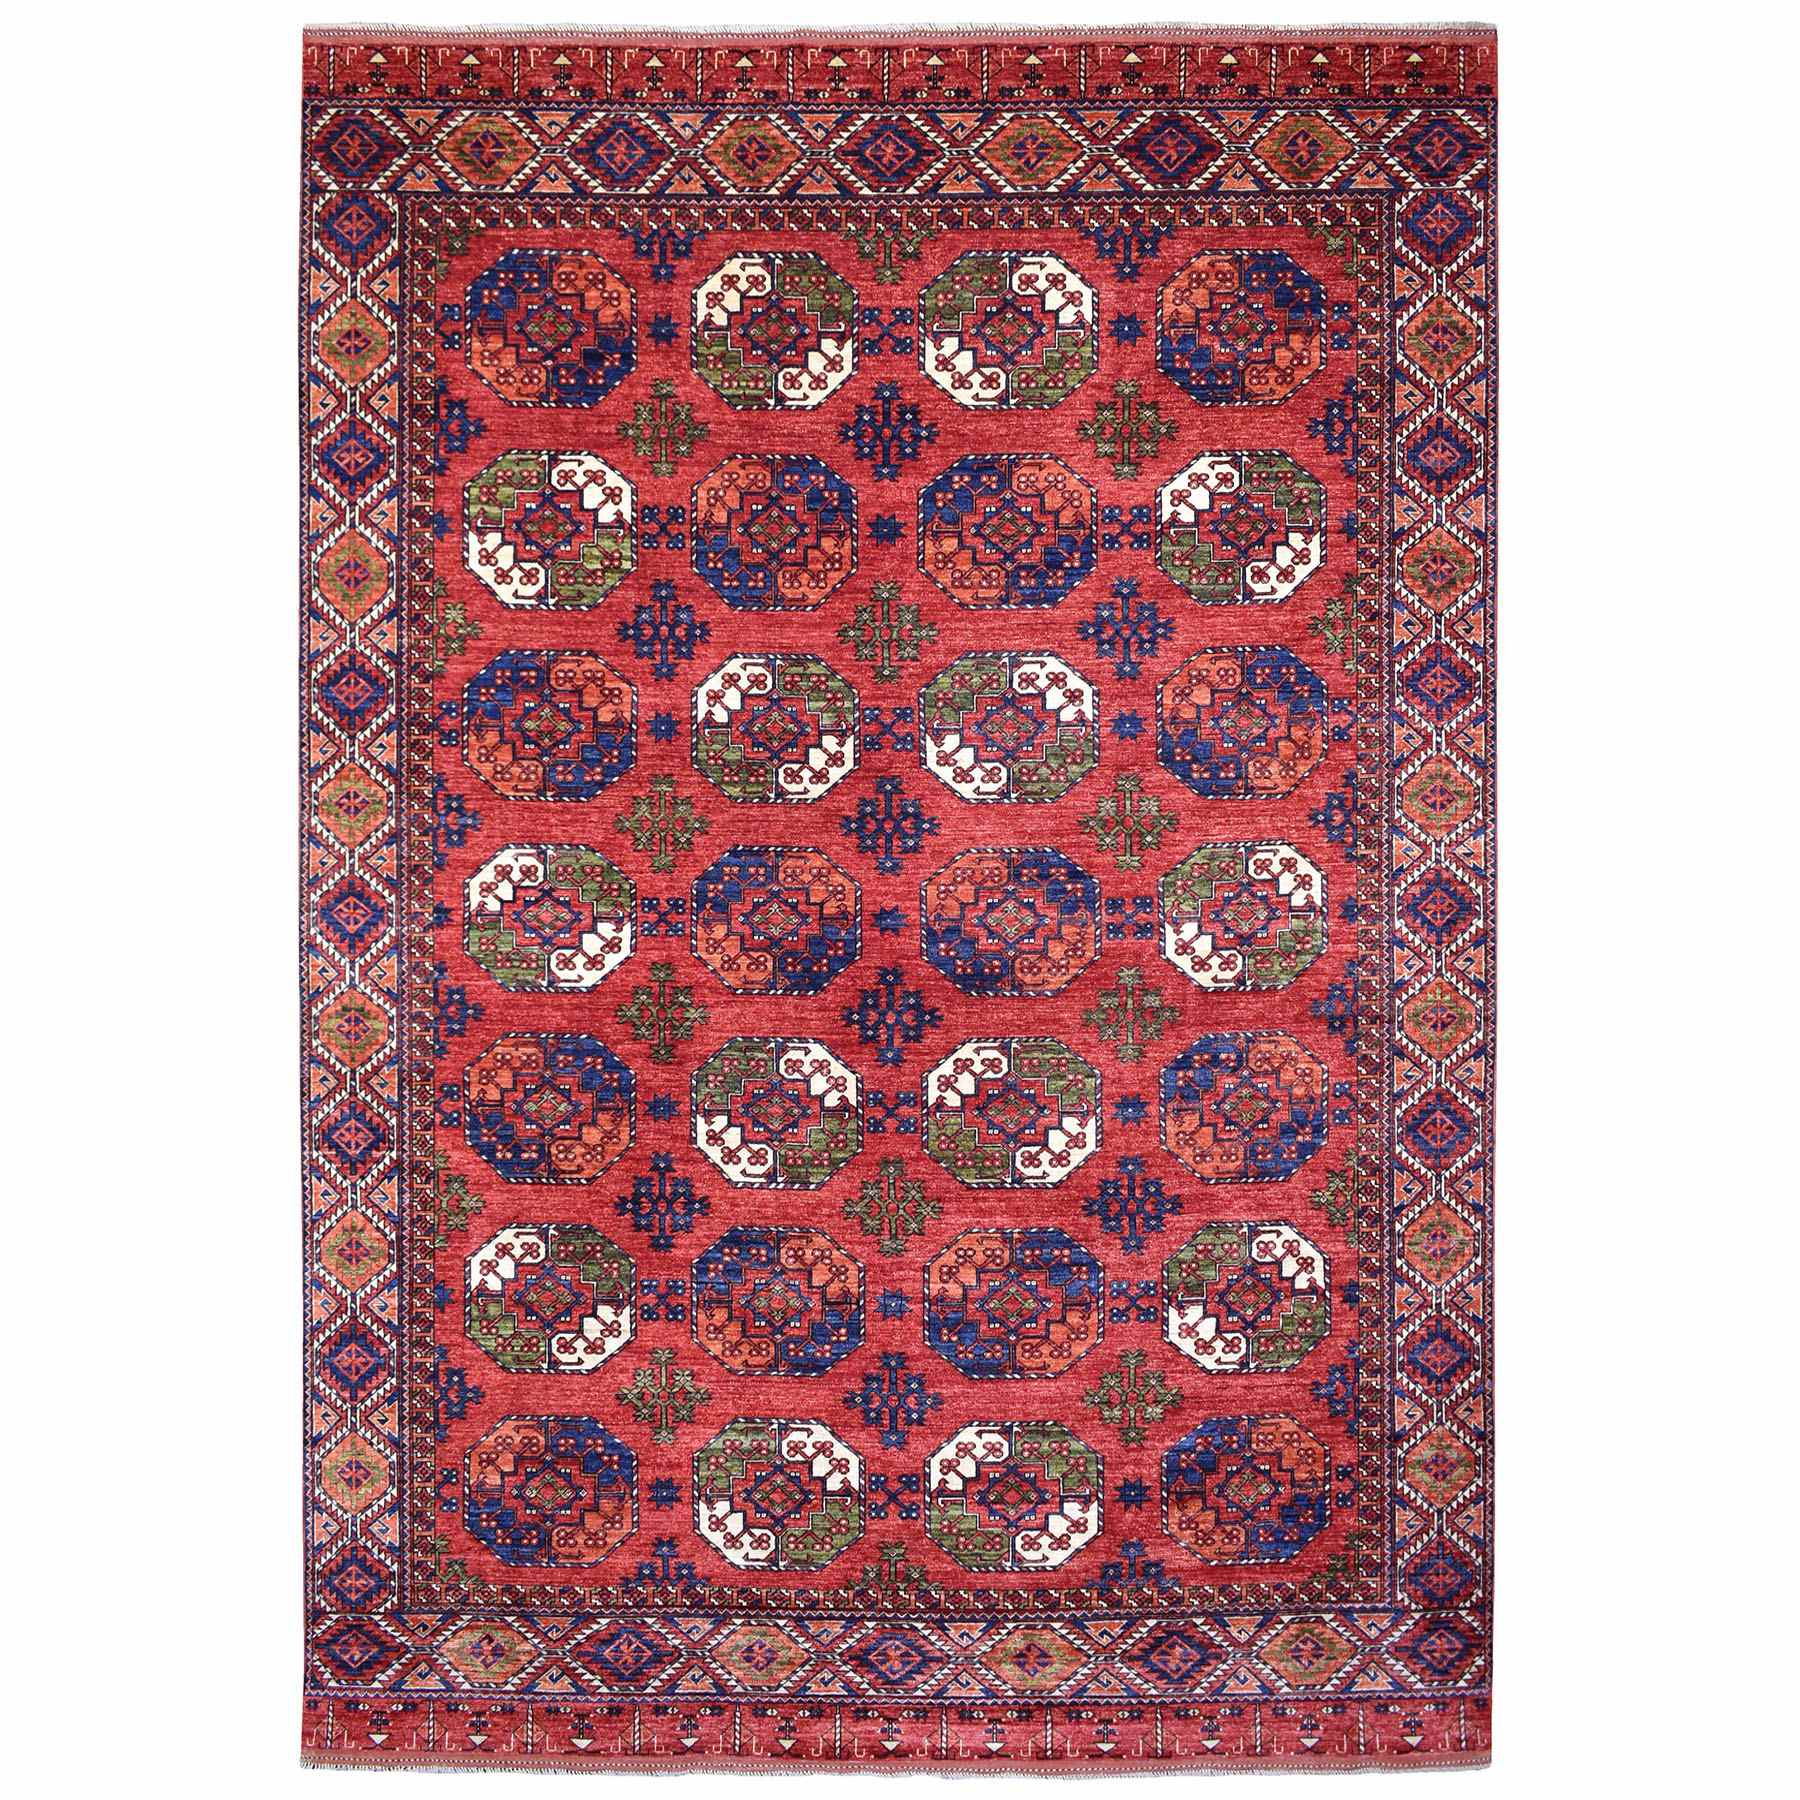 Nomadic And Village Collection Hand Knotted Red Rug No: 1139062